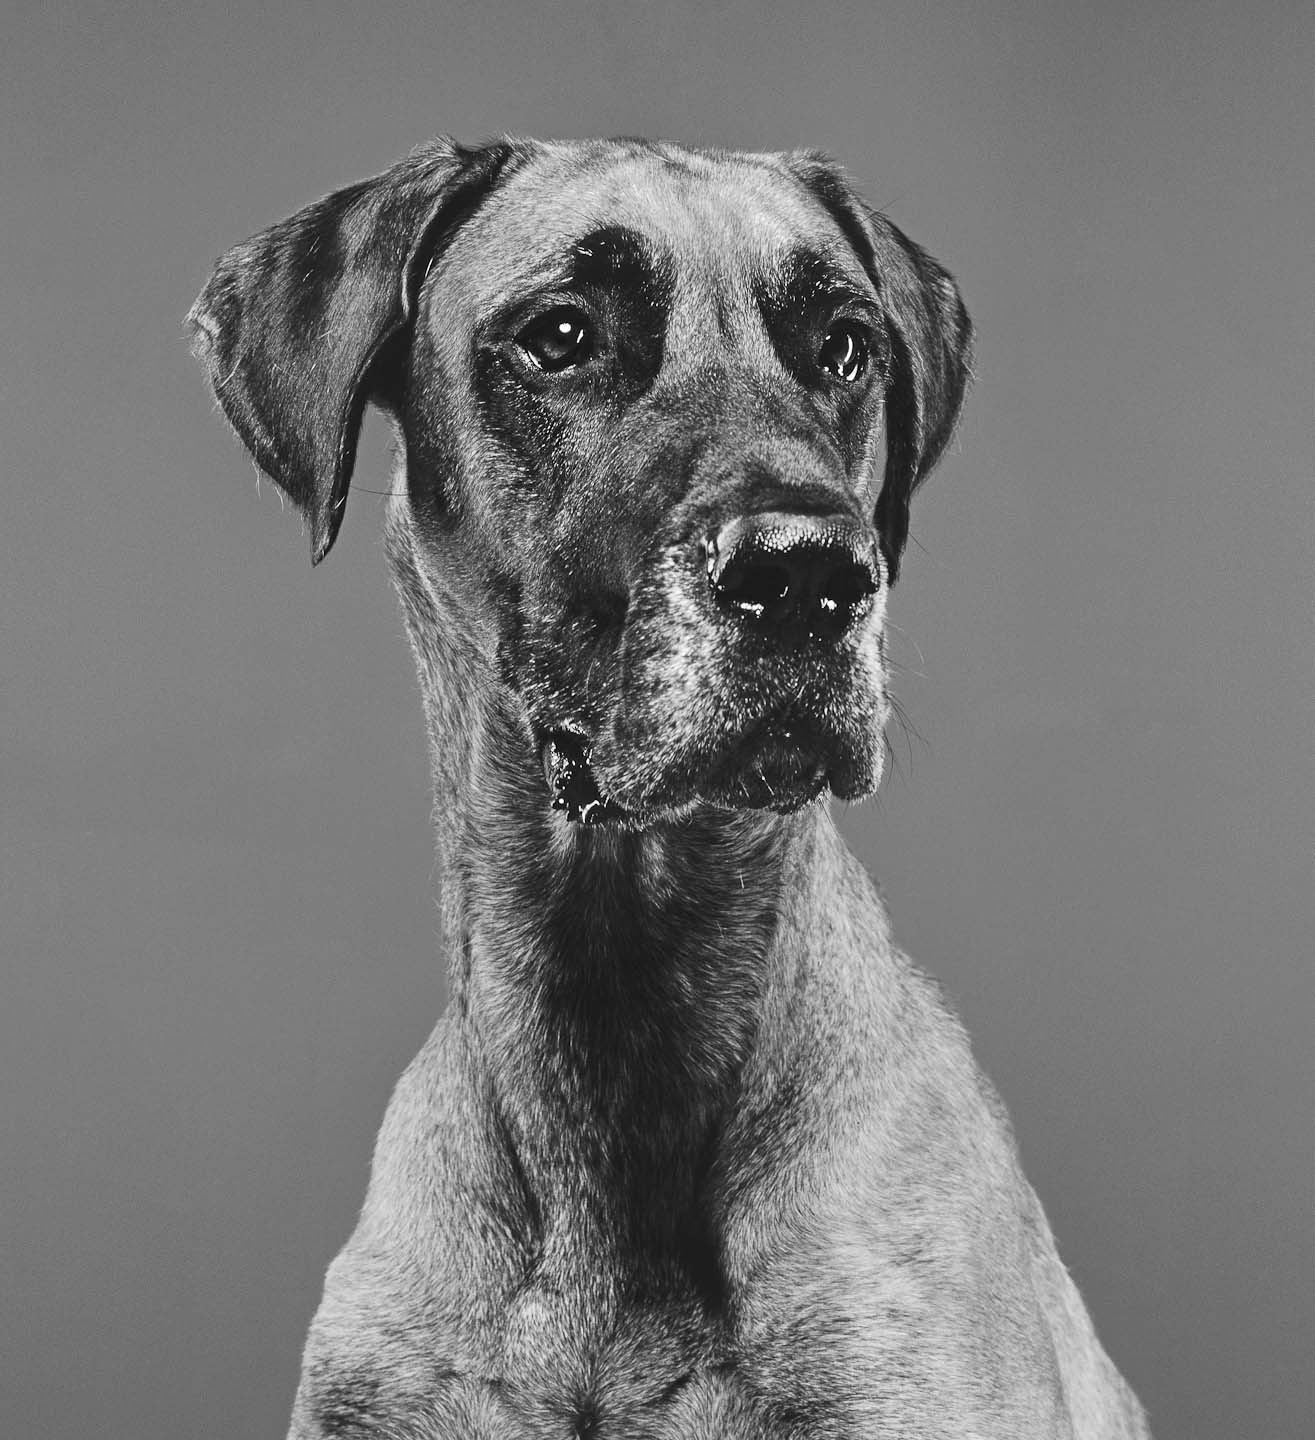 Alex Howe animal contrast dog studio portrait black and white